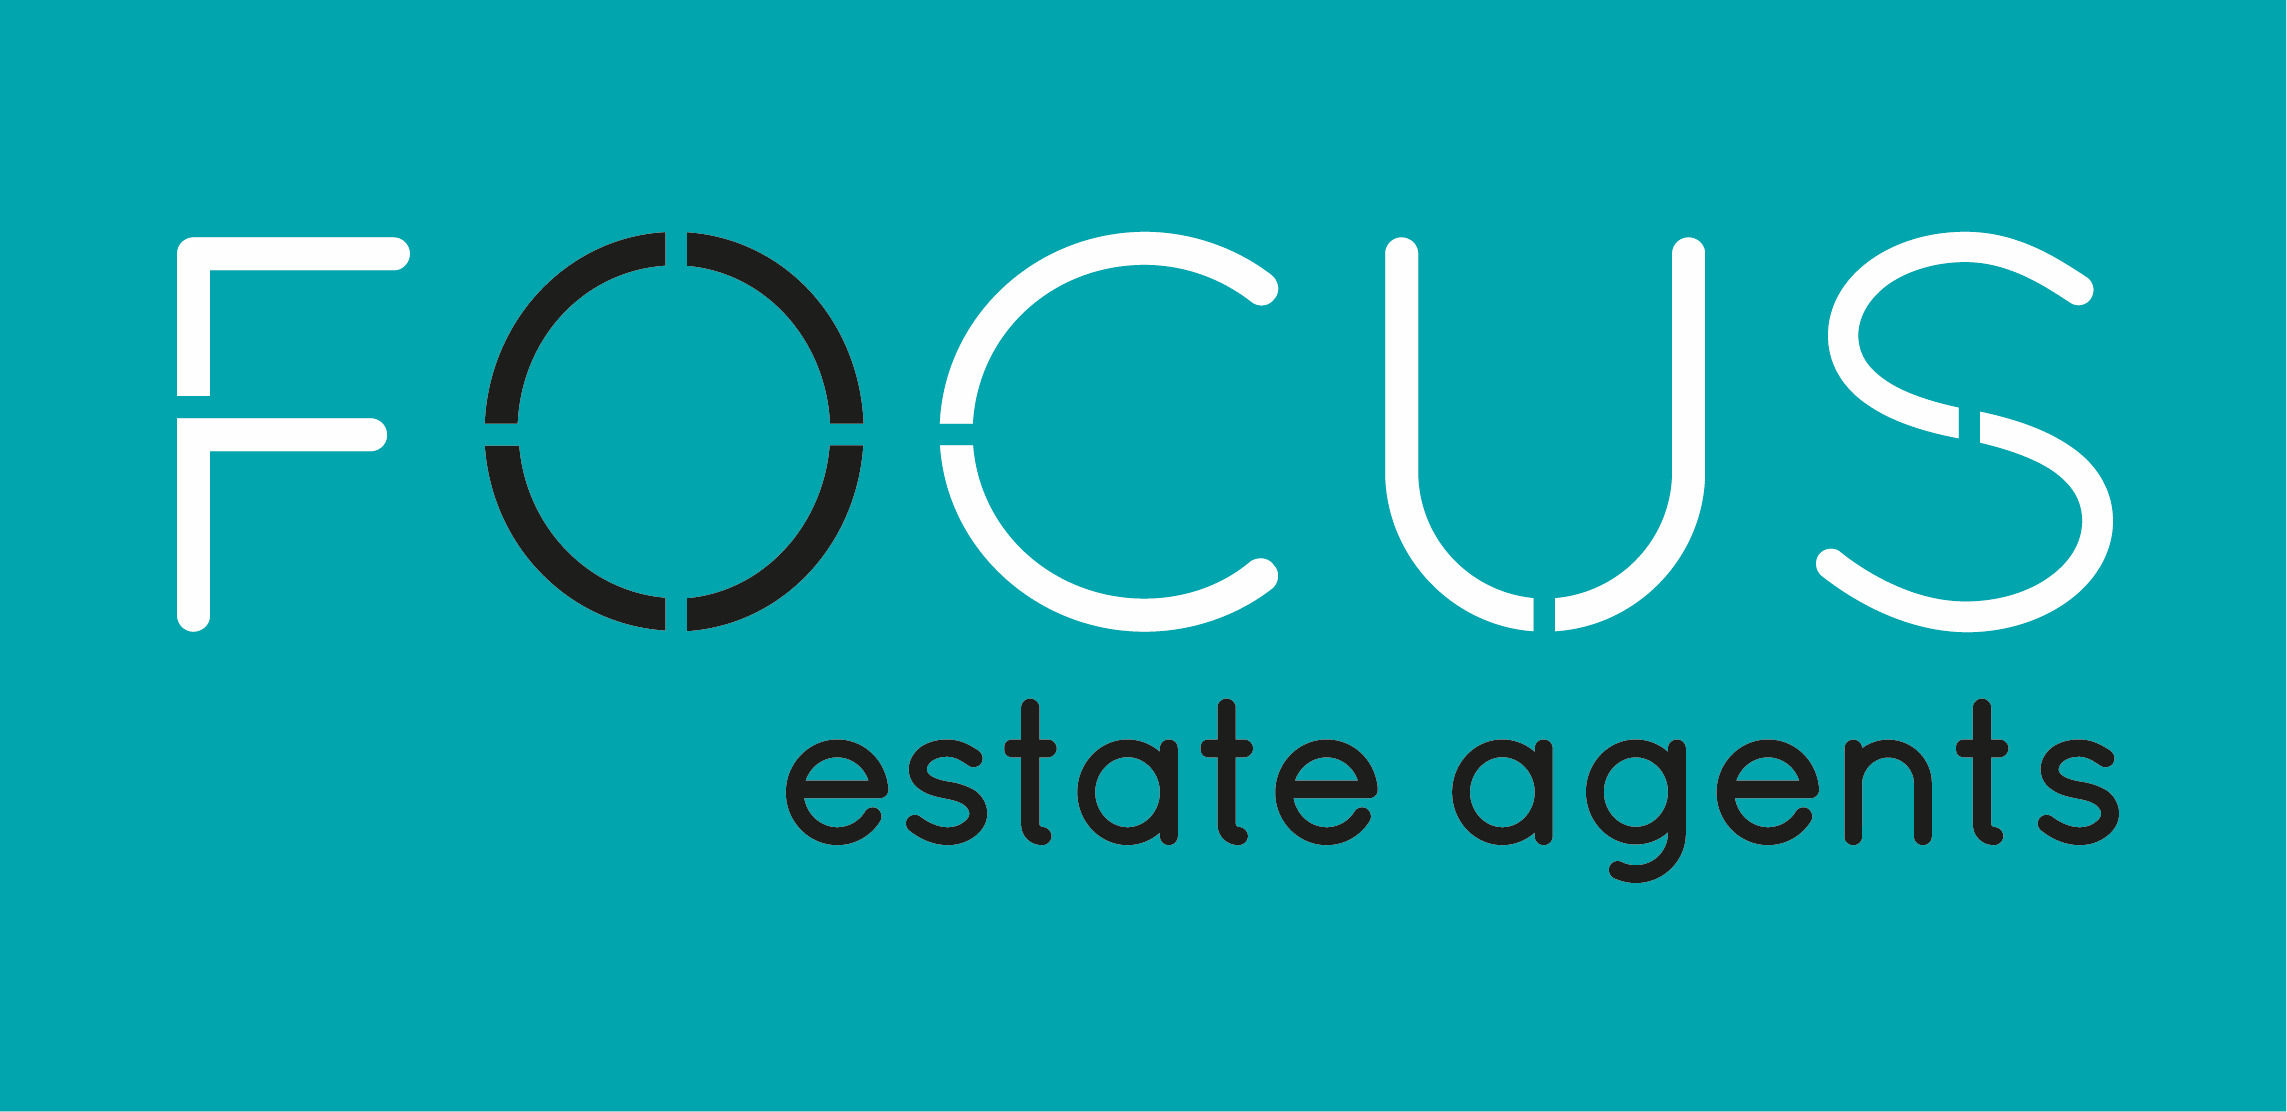 """Focus Estate Agency is driven by a passionate, hardworking, caring team who are your friends in real estate. We are forward thinkers, digital innovators, who are 110% customer service focused and always looking at ways to raise the bar when it comes to property services and making our clients happy.  We want to be """"your friend in real estate!"""""""